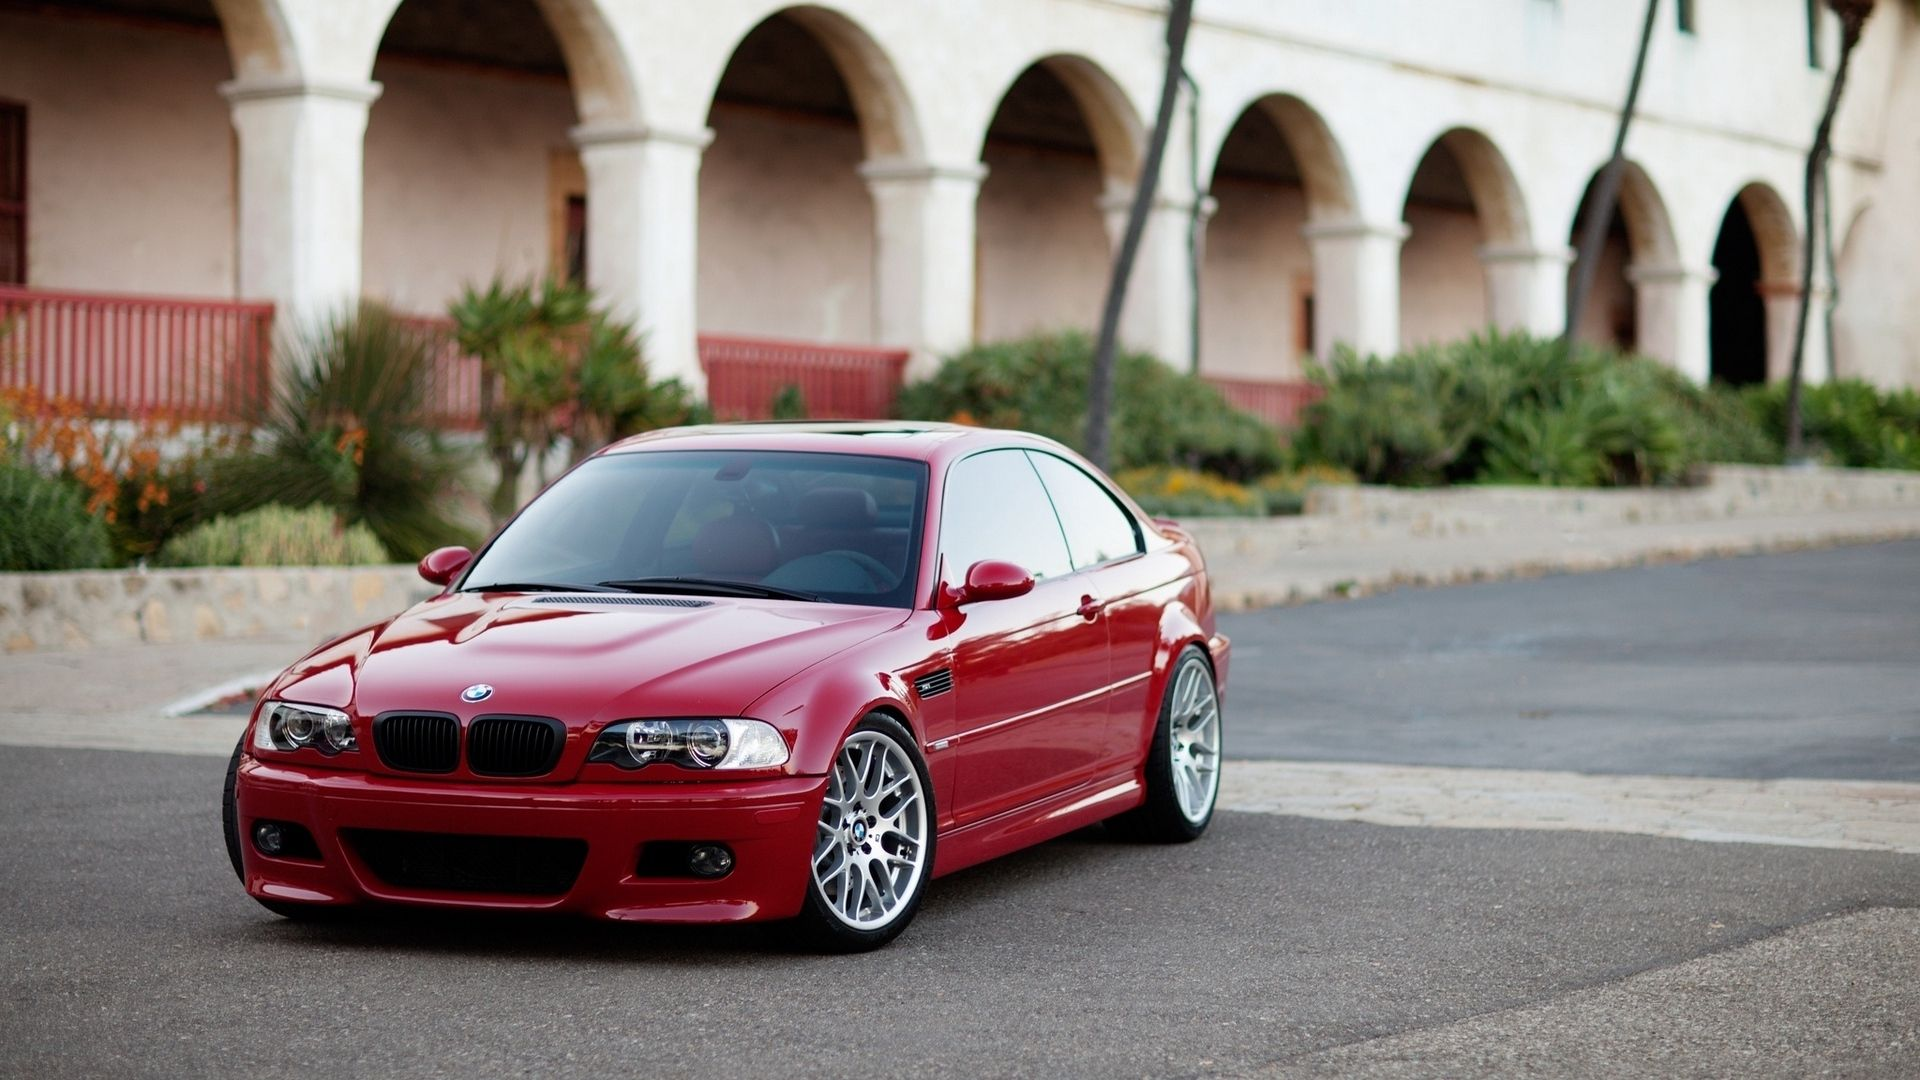 1920x1080 Wallpaper Building Coupe Red E46 Bmw M3 With